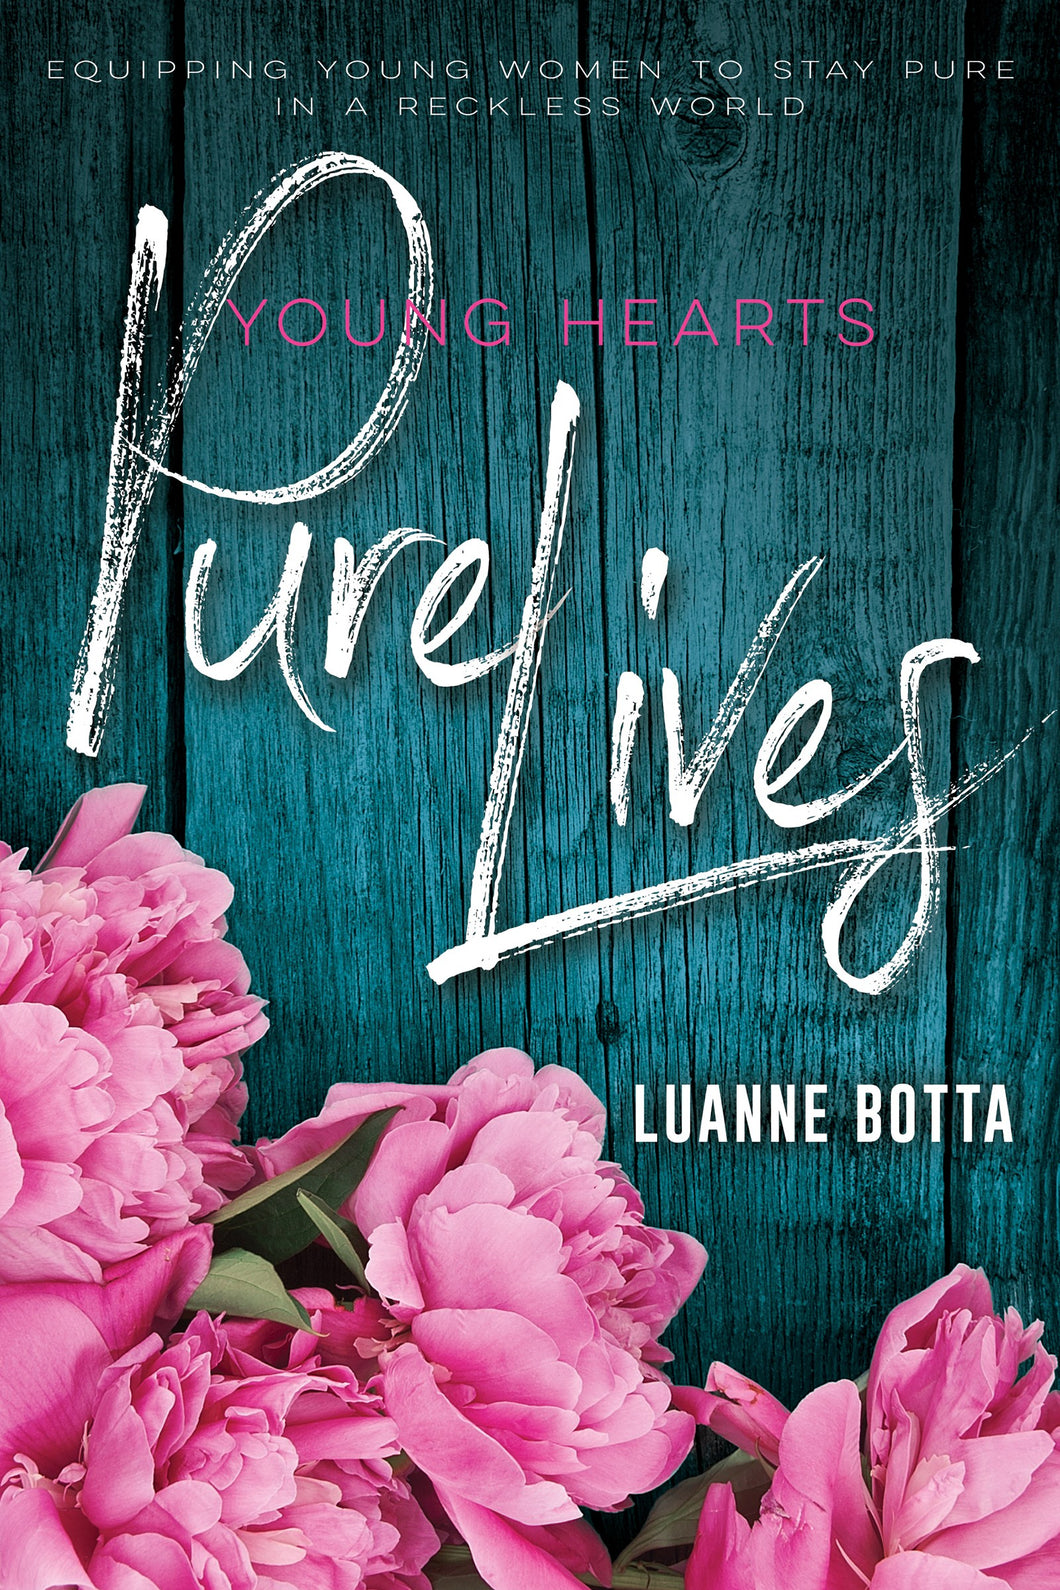 Young Hearts Pure Lives: Staying Pure In A Reckless World